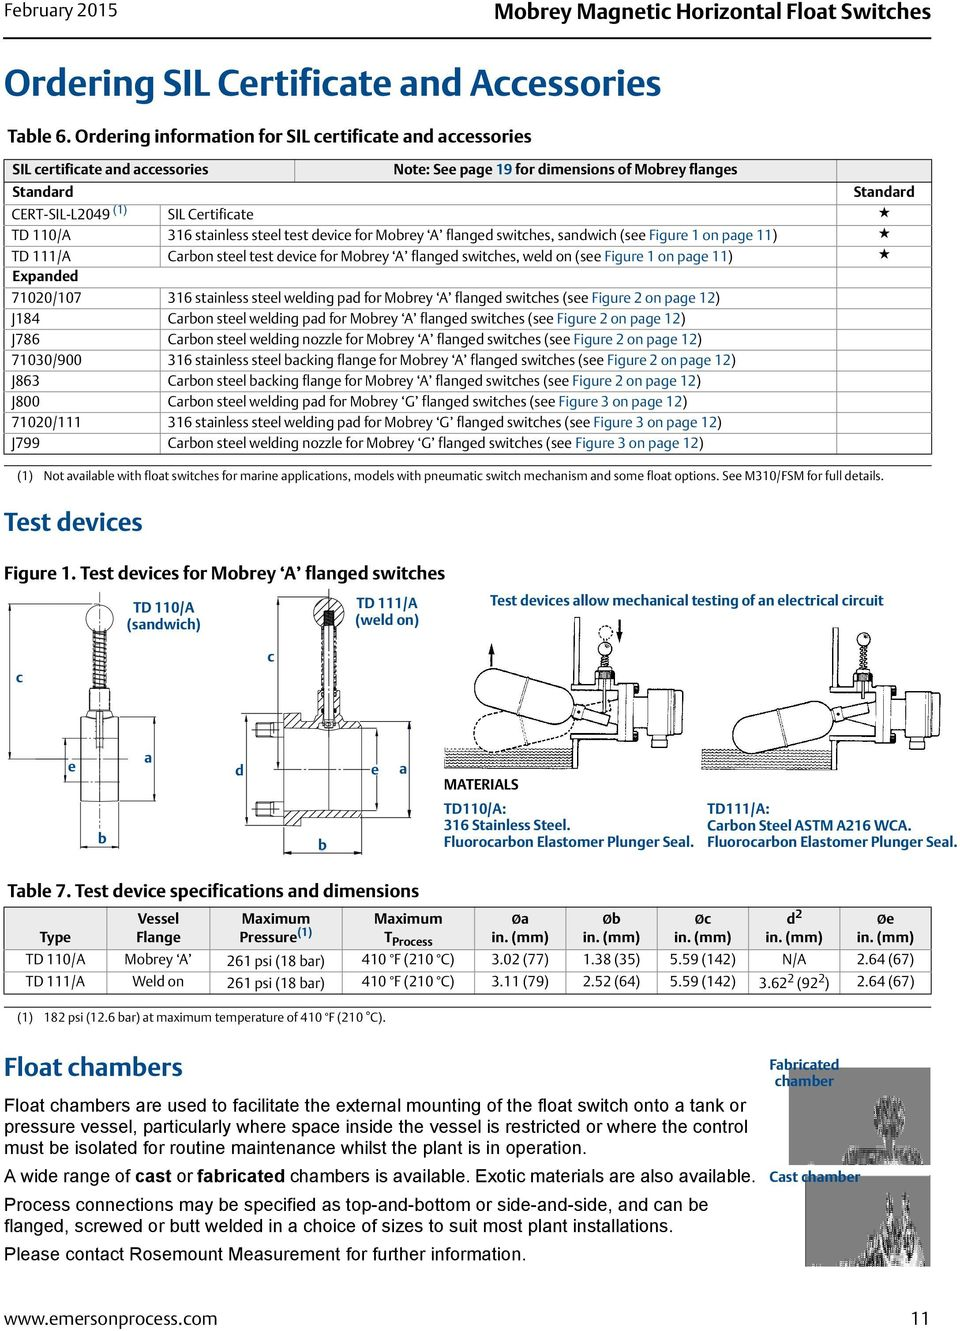 Mobrey Magnetic Horizontal Float Switches Pdf Water Storage Tanks Along With Pump Latching Relay Circuit 316 Stainless Steel Test Device For A Flanged Sandwich See Figure 1